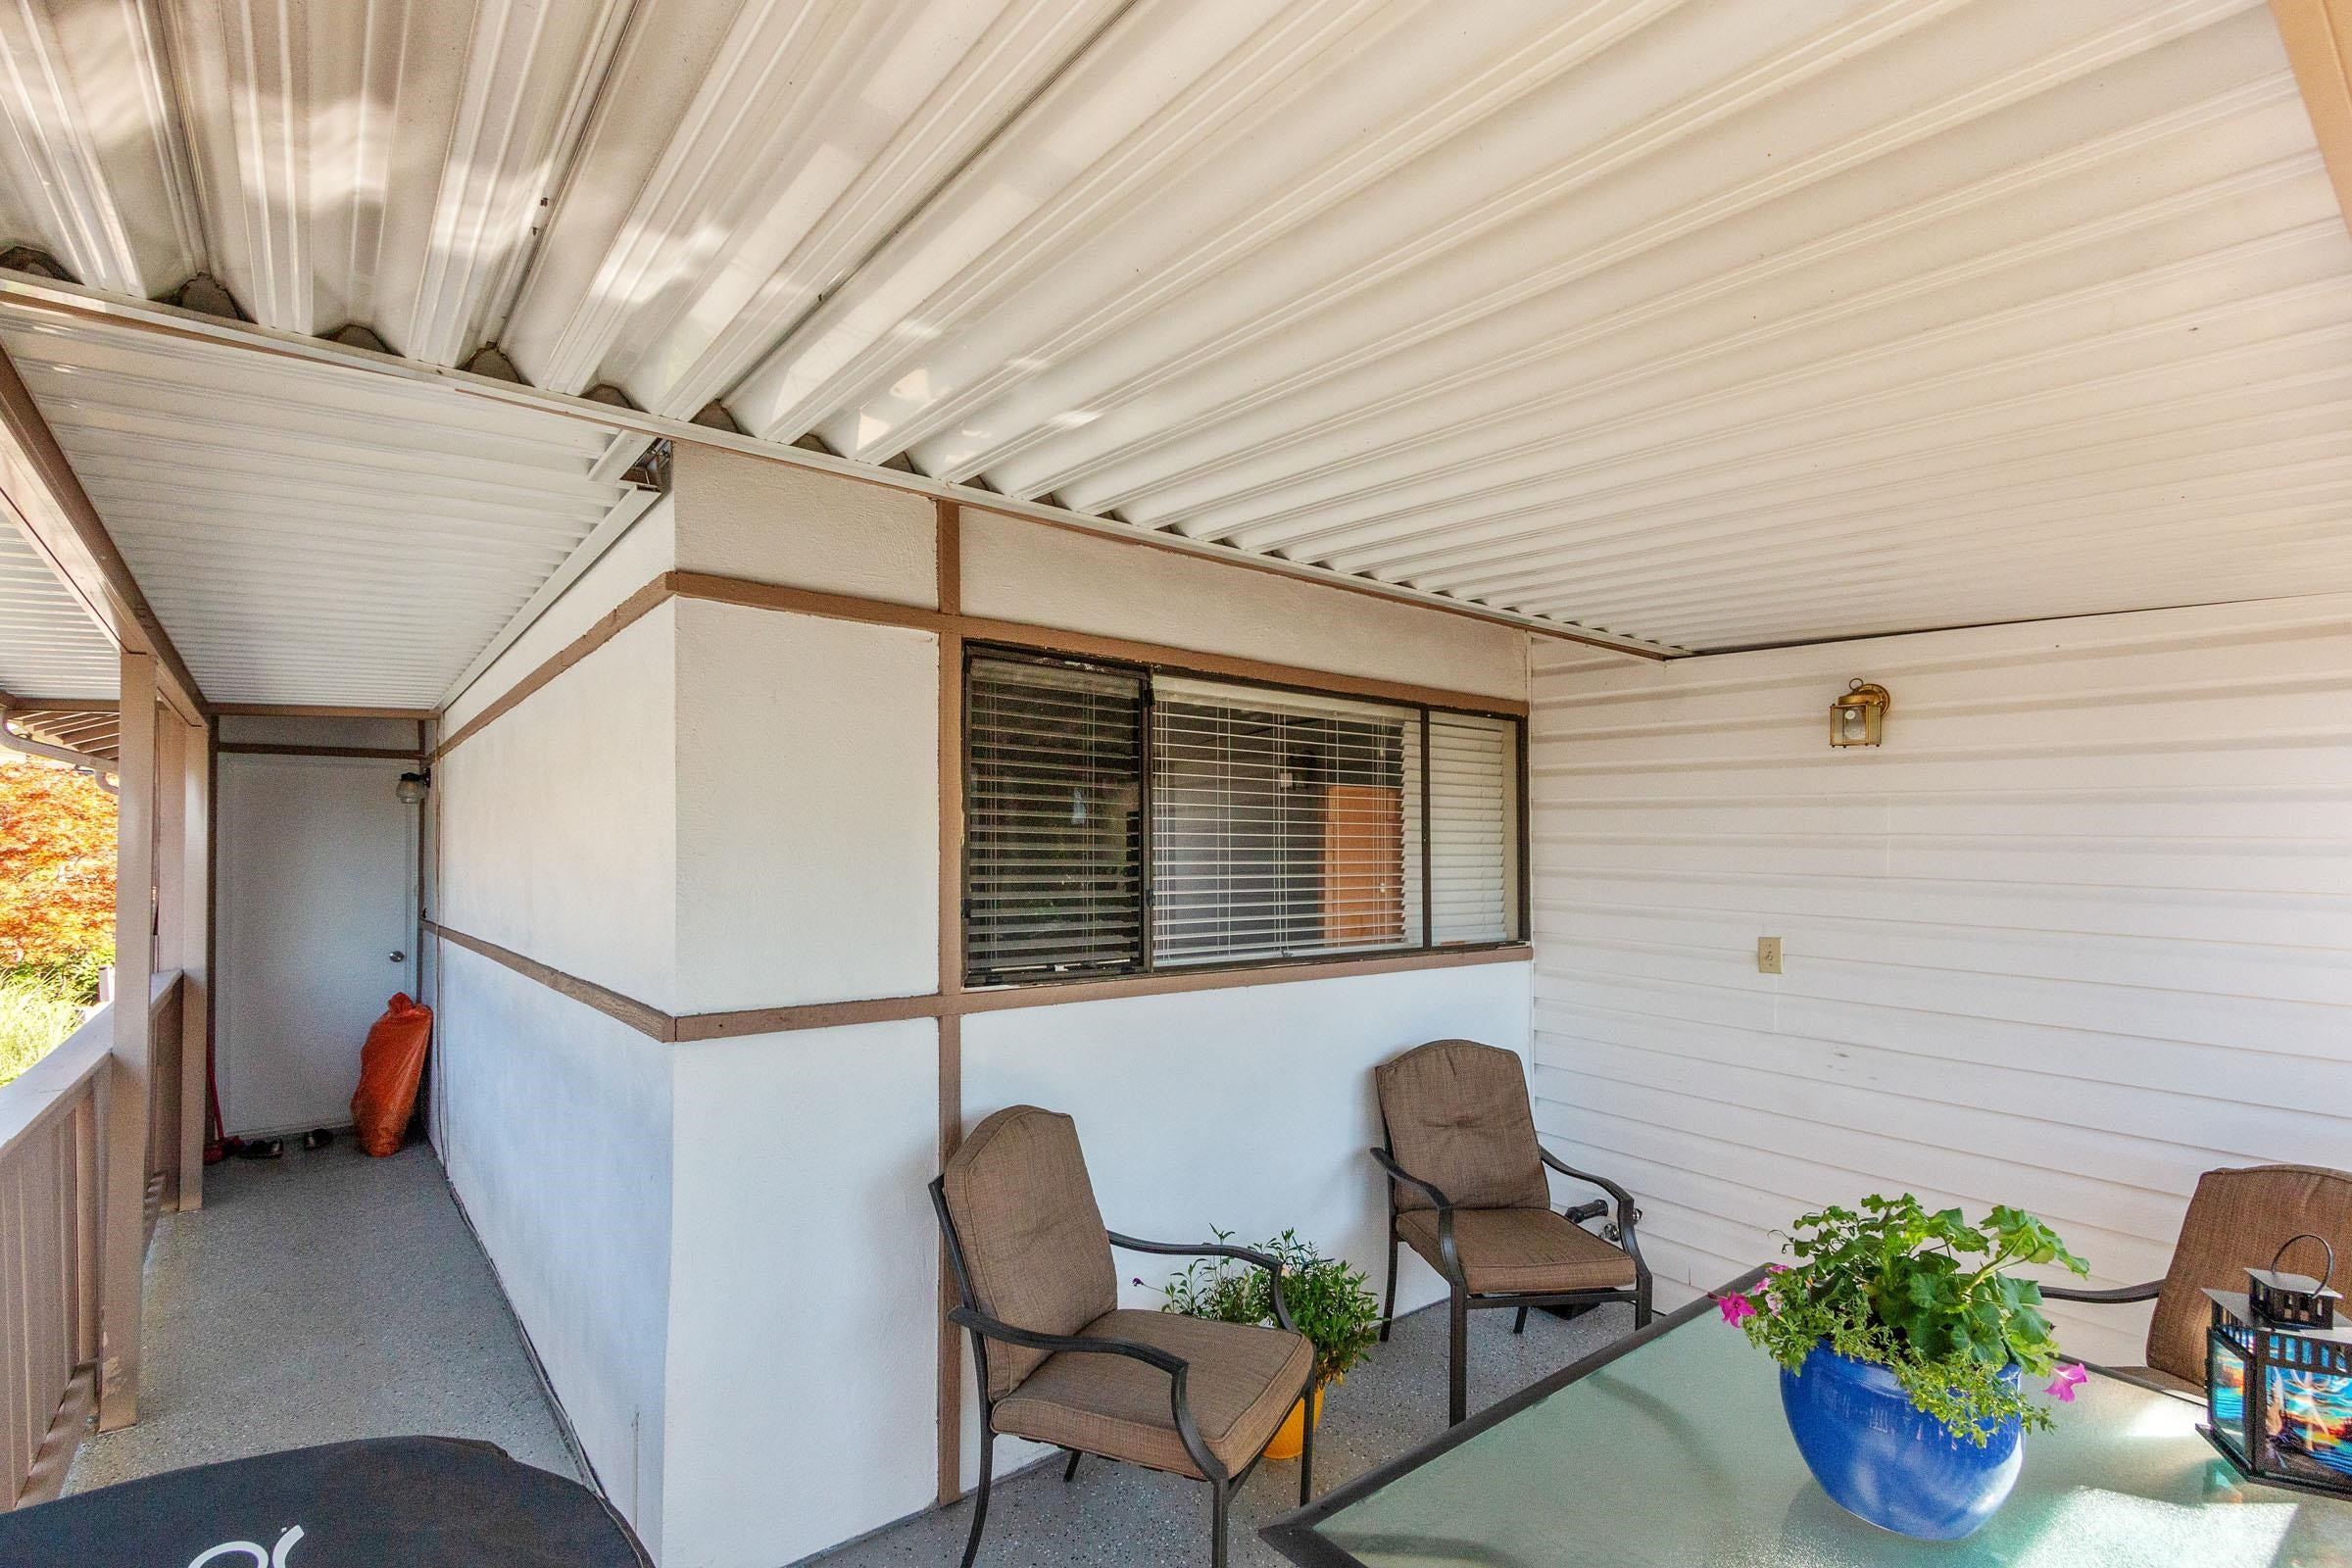 117 W ST. JAMES ROAD - Upper Lonsdale House/Single Family for sale, 5 Bedrooms (R2614107) - #21